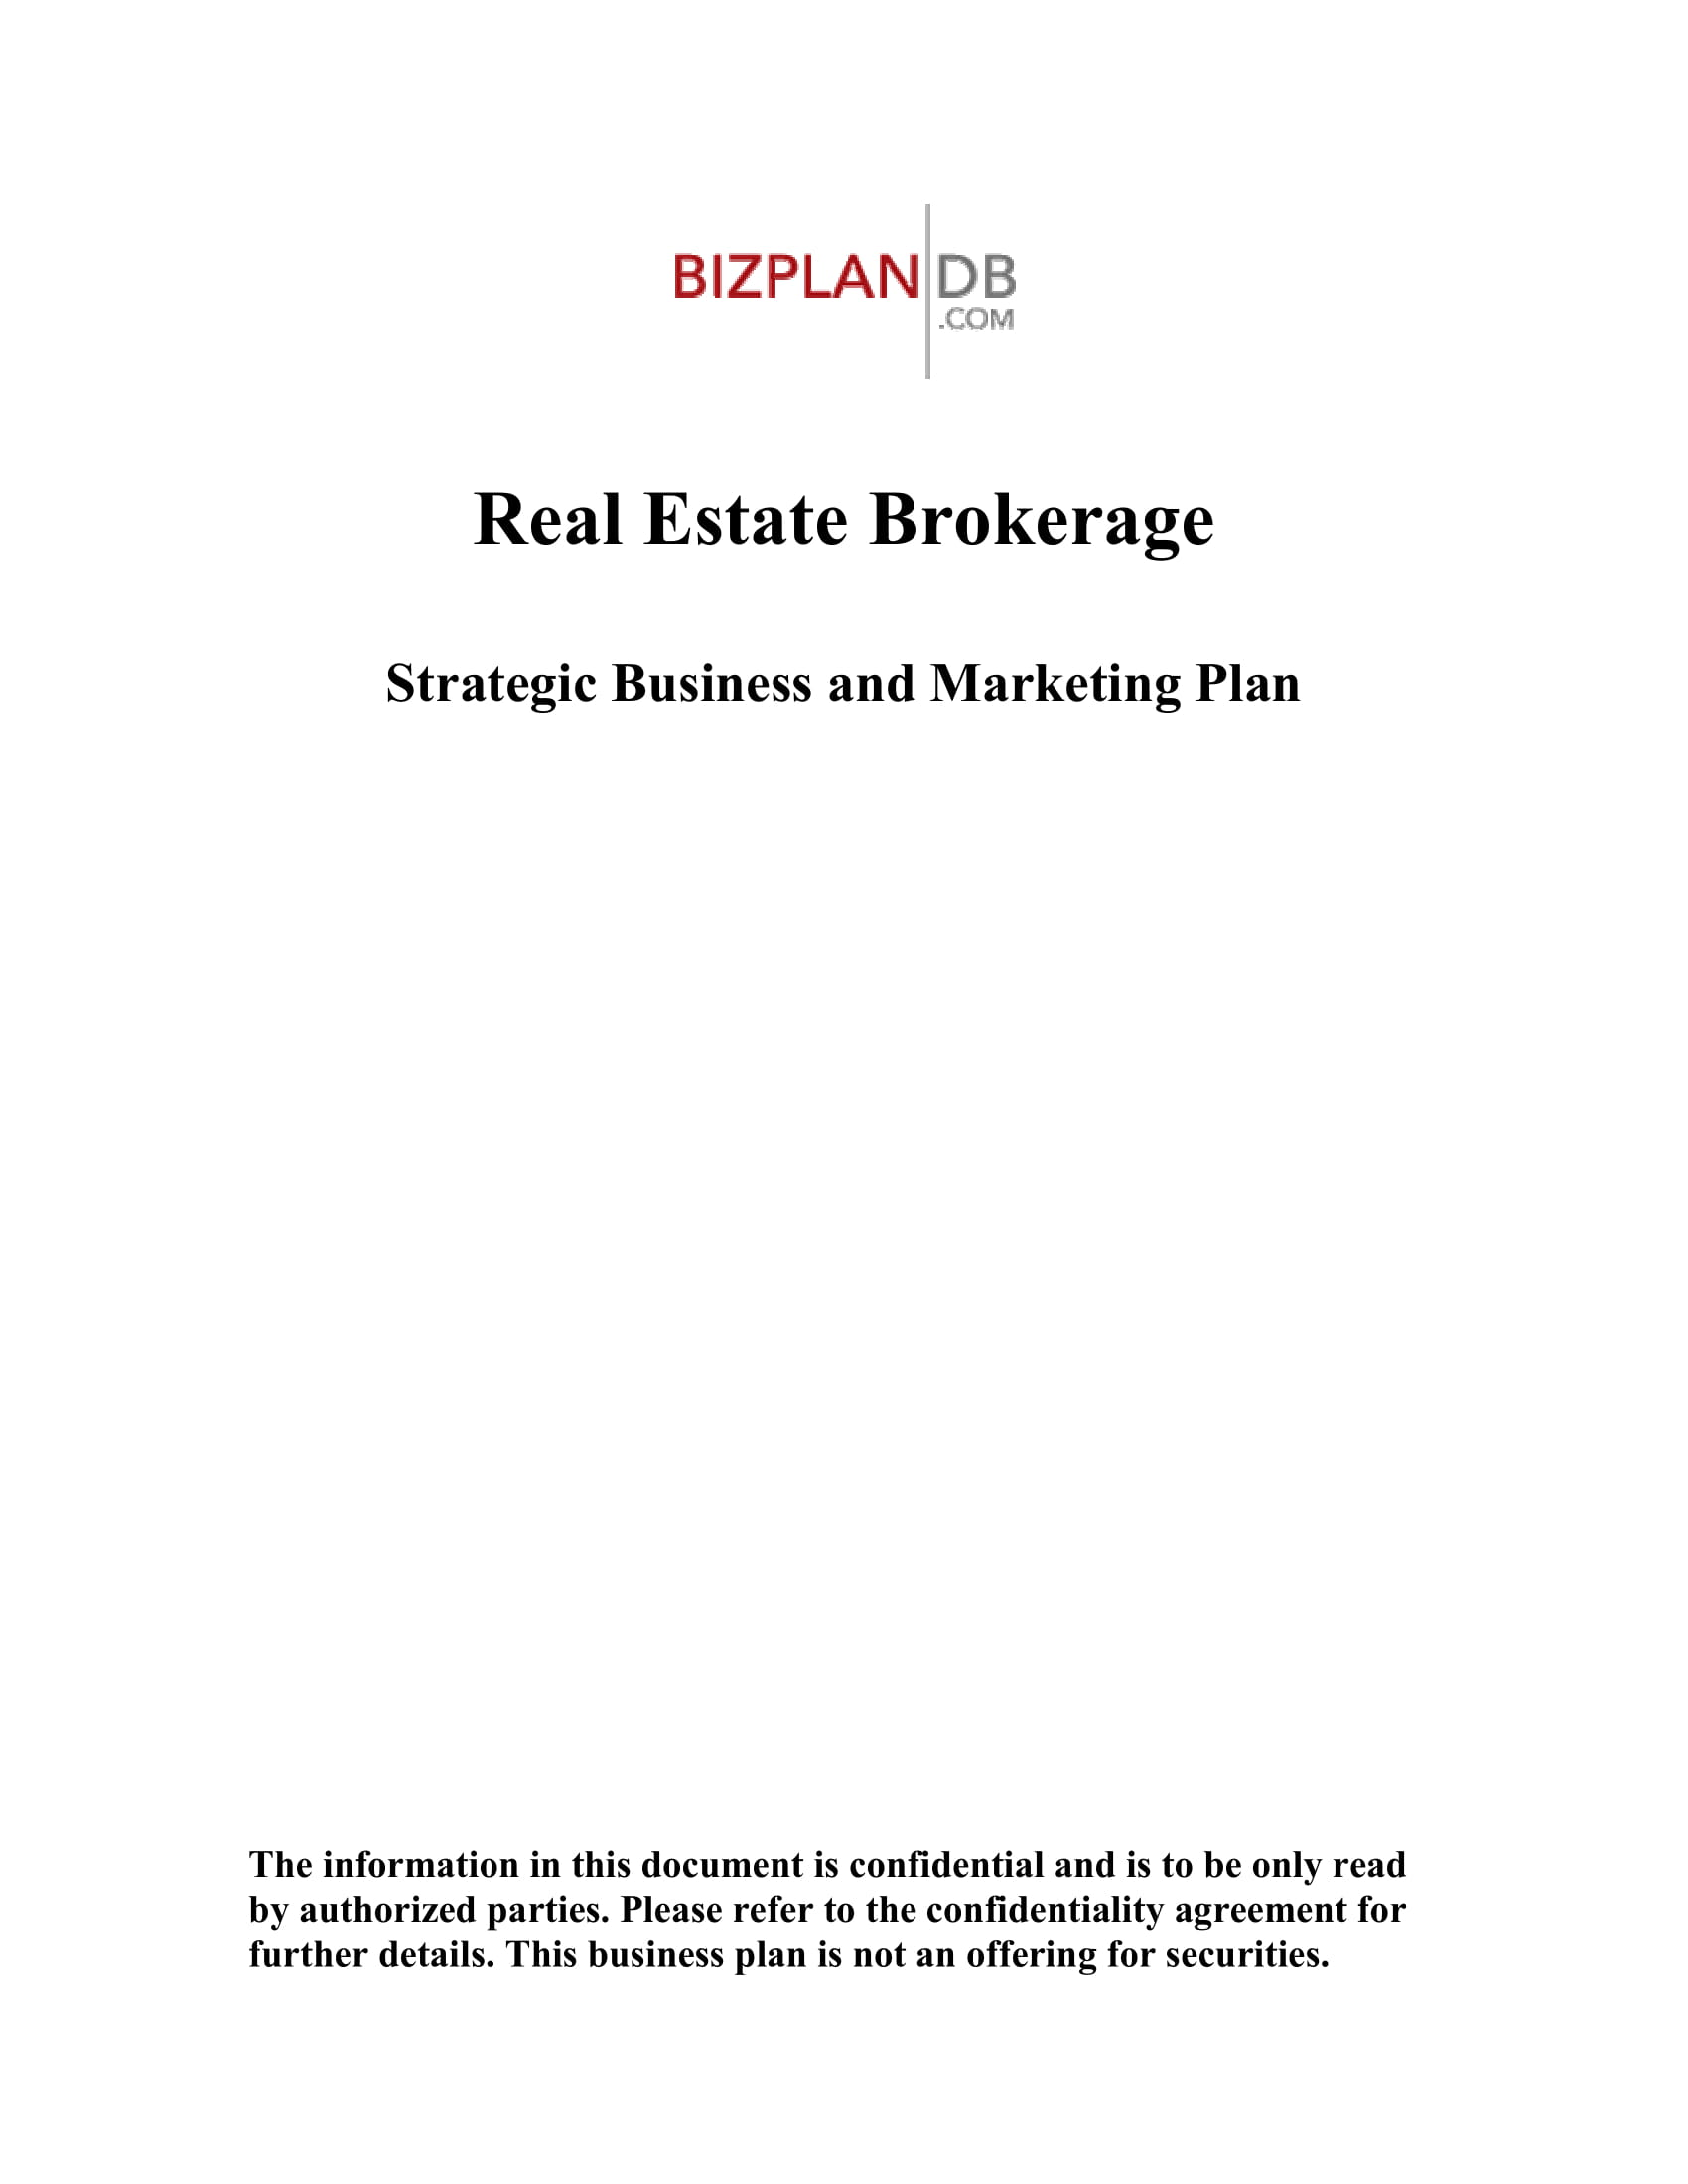 real estate brokerage annual strategic business and marketing plan example 01